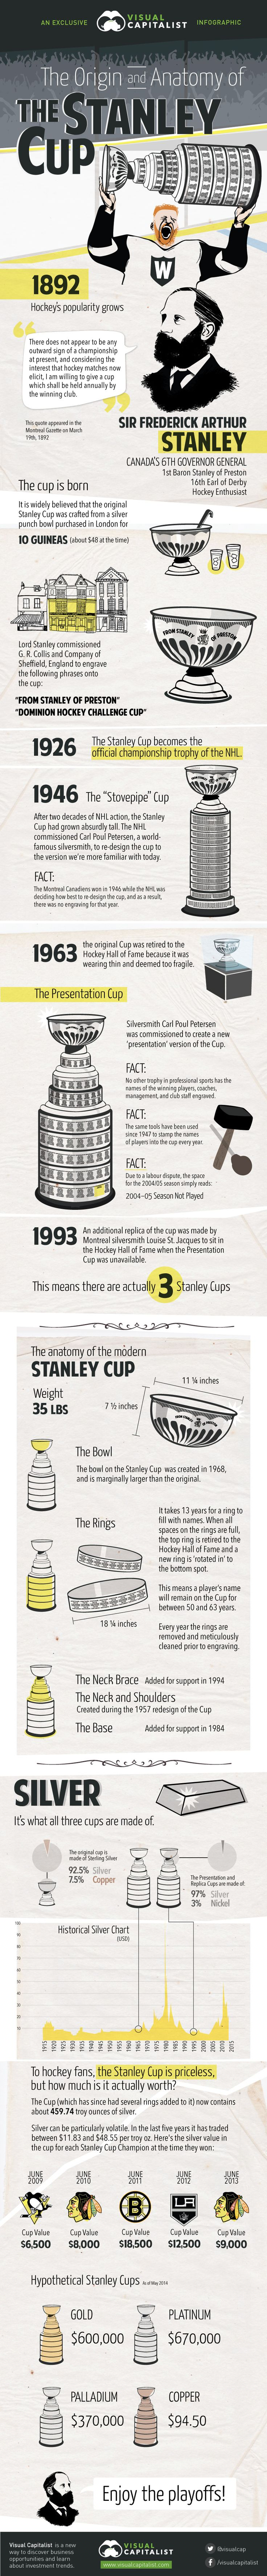 Take a look below for everything you would ever need to know about the Stanley Cup:  As theNHLplayoffs heat up, we bring you the inside scoop on Lord Stanley's...